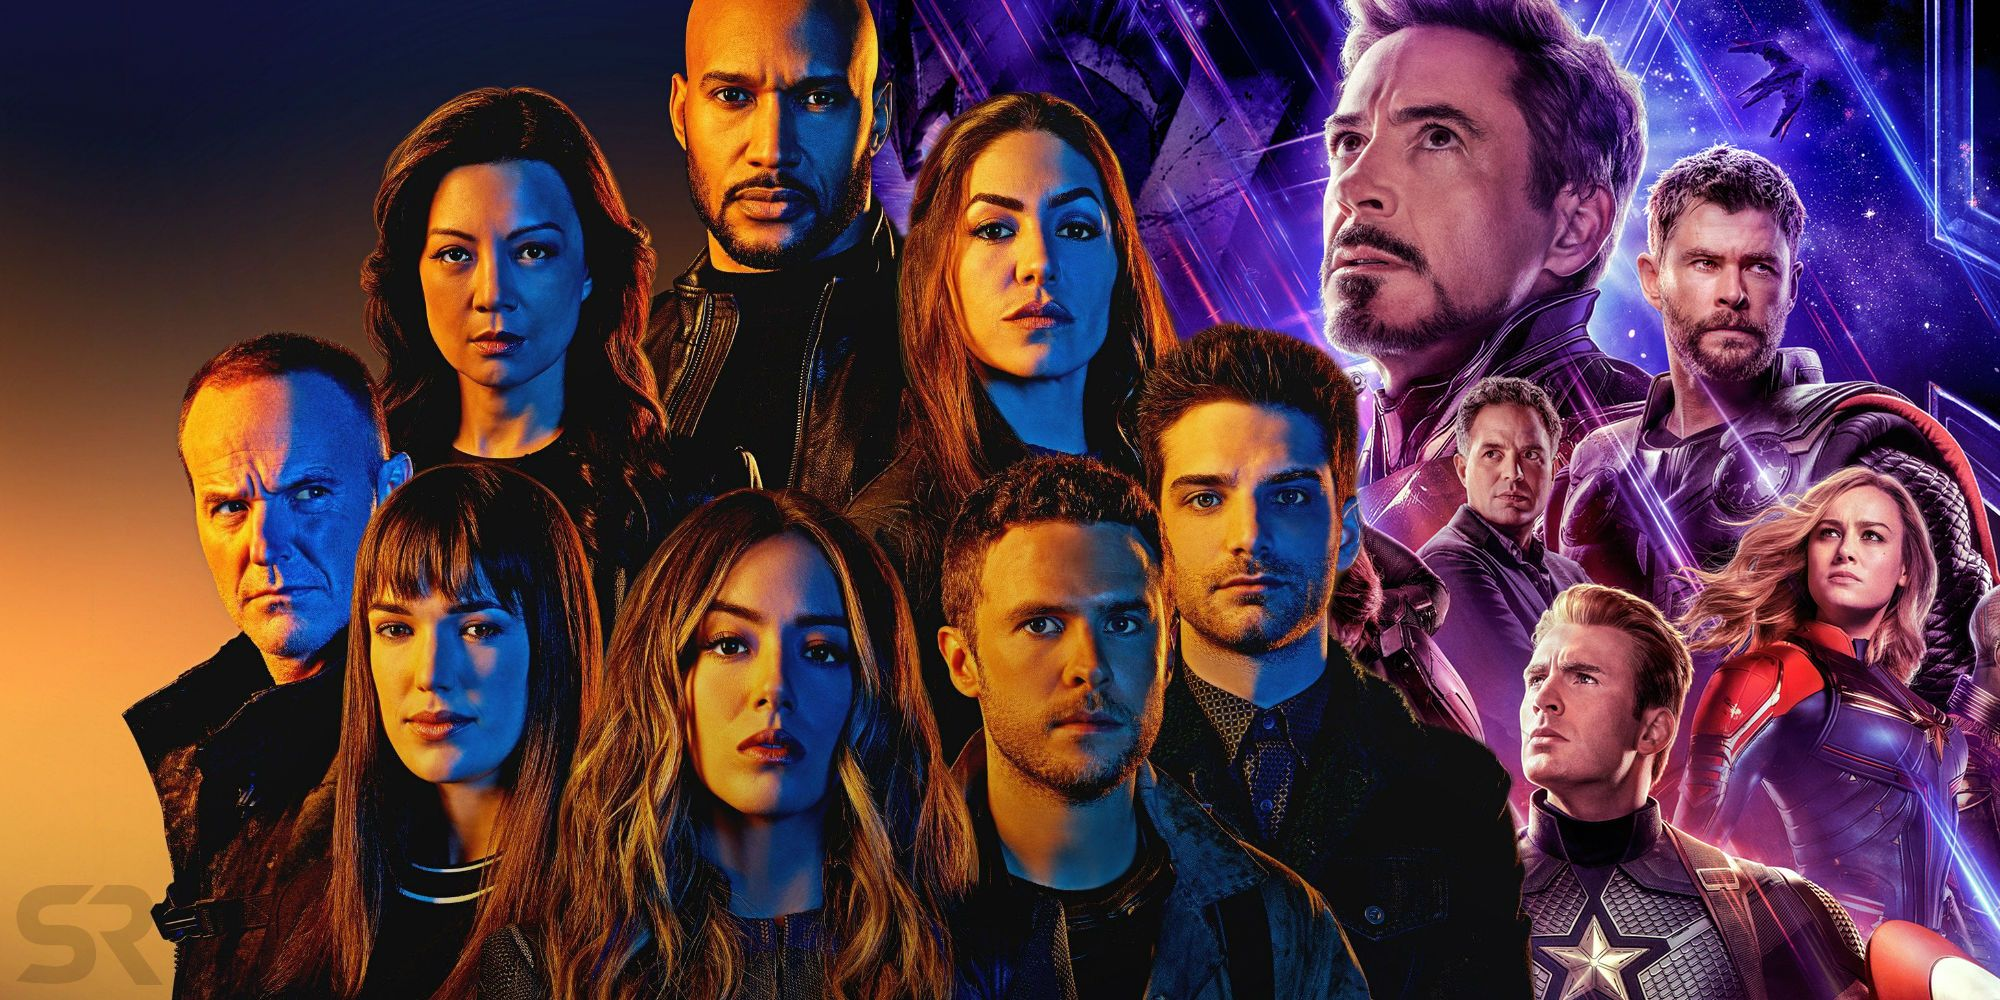 Agents Of SHIELD Season 7 May Have Its Own Endgame Time Travel Plot